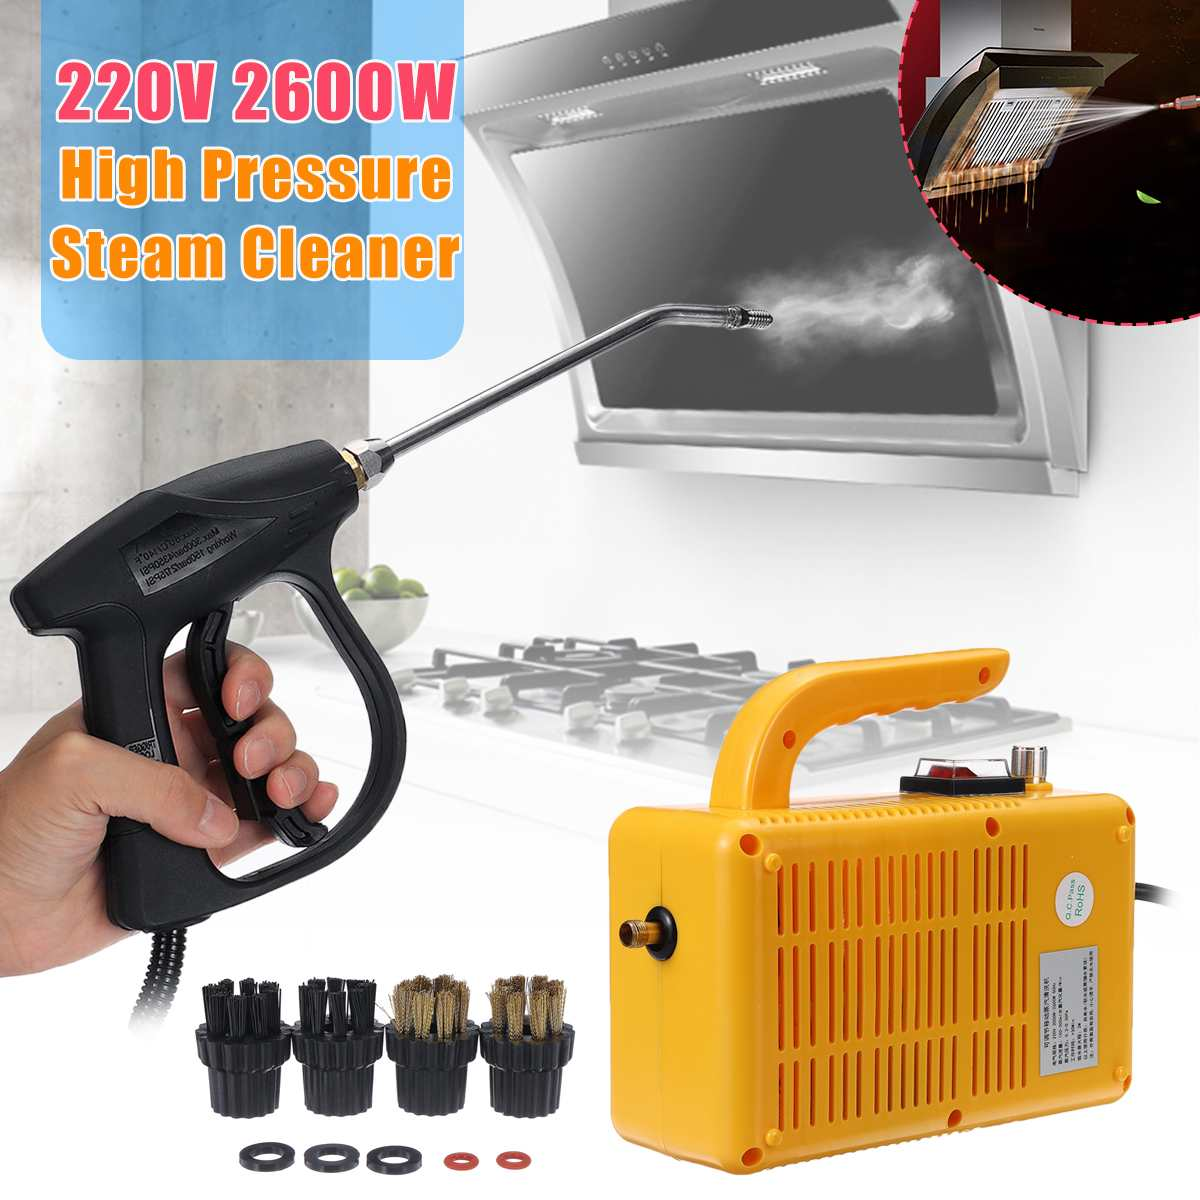 220V 2600W High Pressure Steam Cleaner Portable Electric Steam Cleaning Machine Household Cleaner Pumping Sterilization